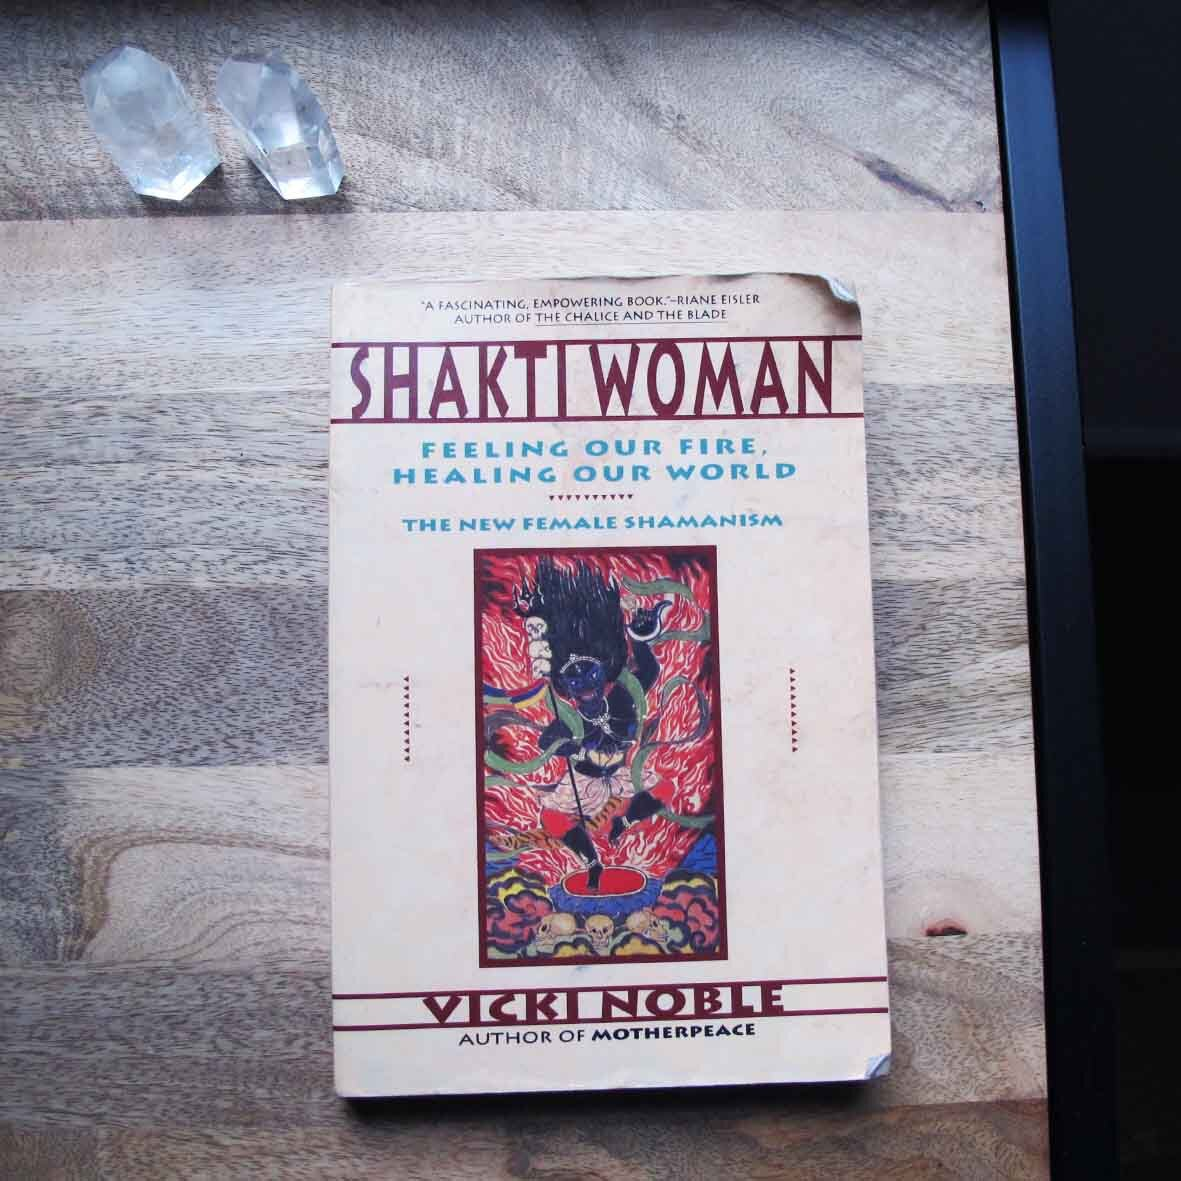 Noble, V 1991, Shakti Woman, Feeling Our Fire, Healing Our World, The New Female Shamanism.